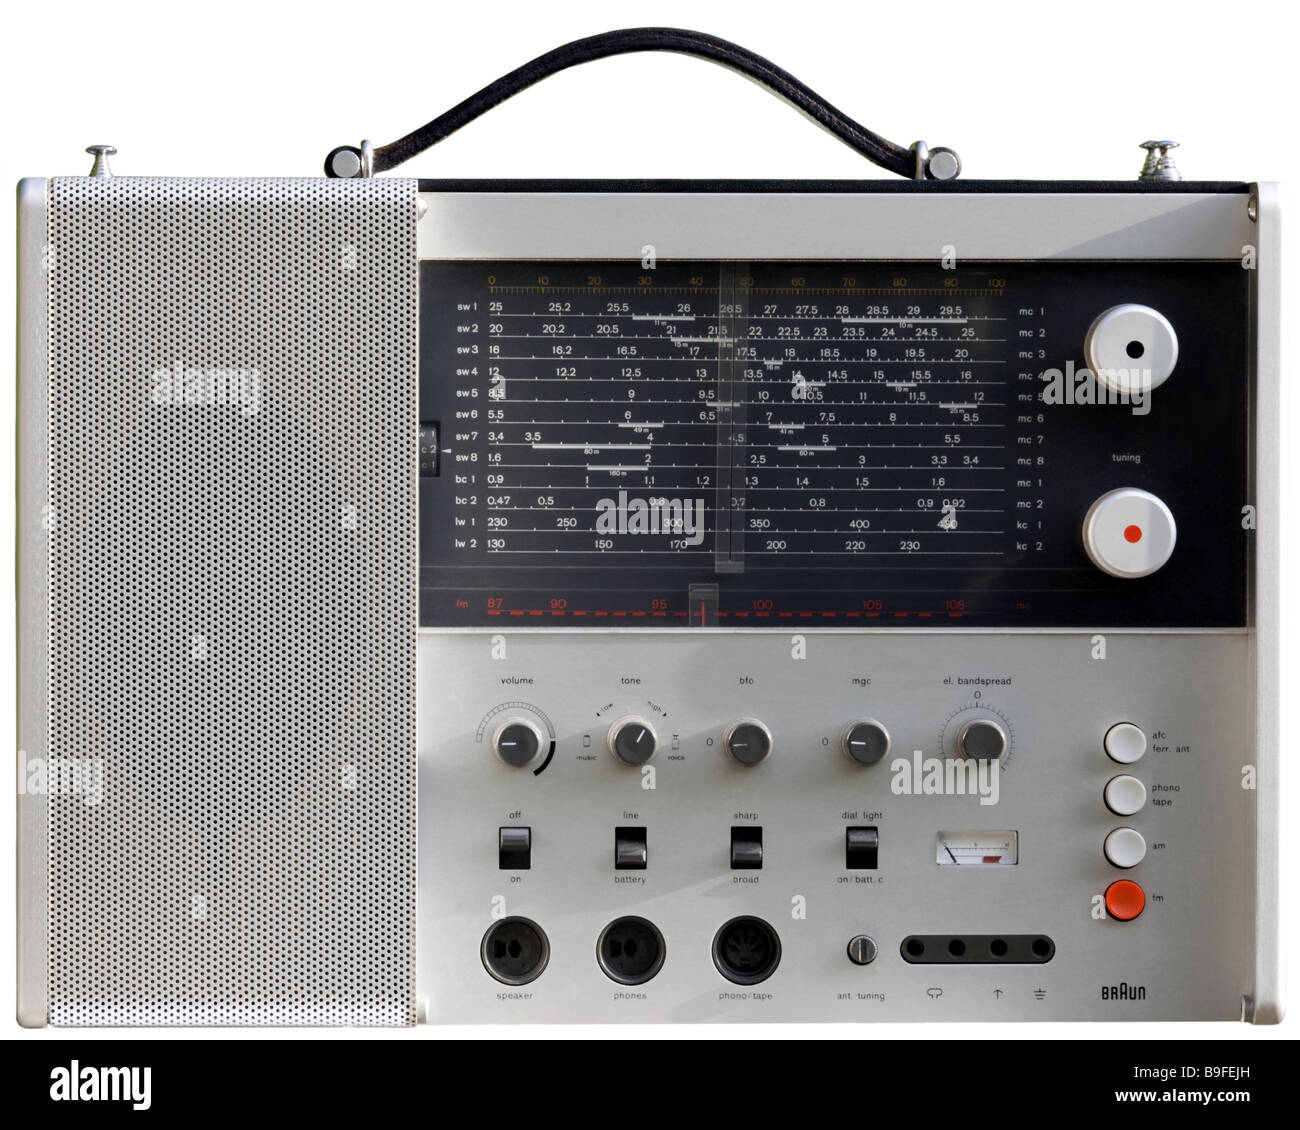 COMMUNICATIONS:  Braun Station T1000 CD World Receiver designed by Dieter Rams (1965) - Stock Image